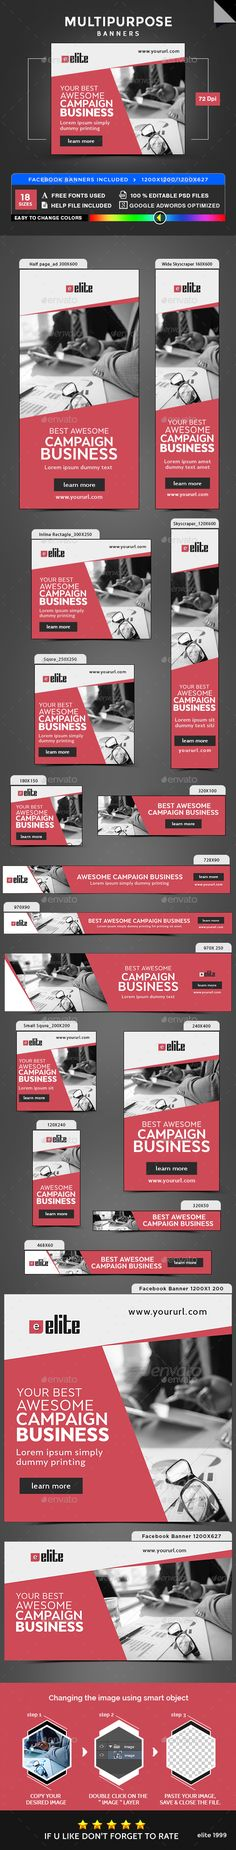 Multipurpose Web Banners Template PSD #promotion #ads